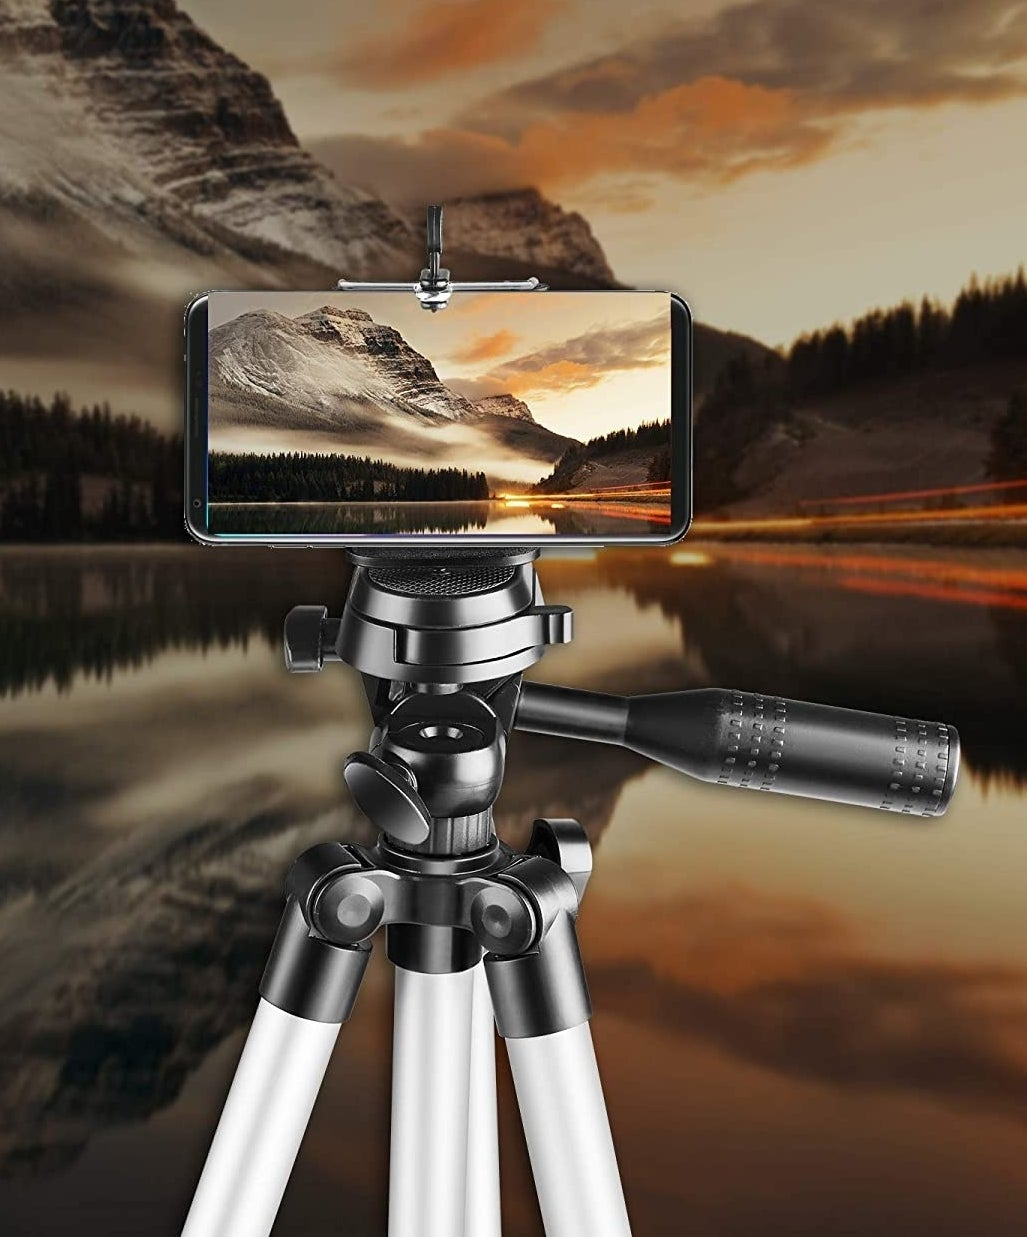 Tripod with smartphone attached capturing a beautiful scenery.